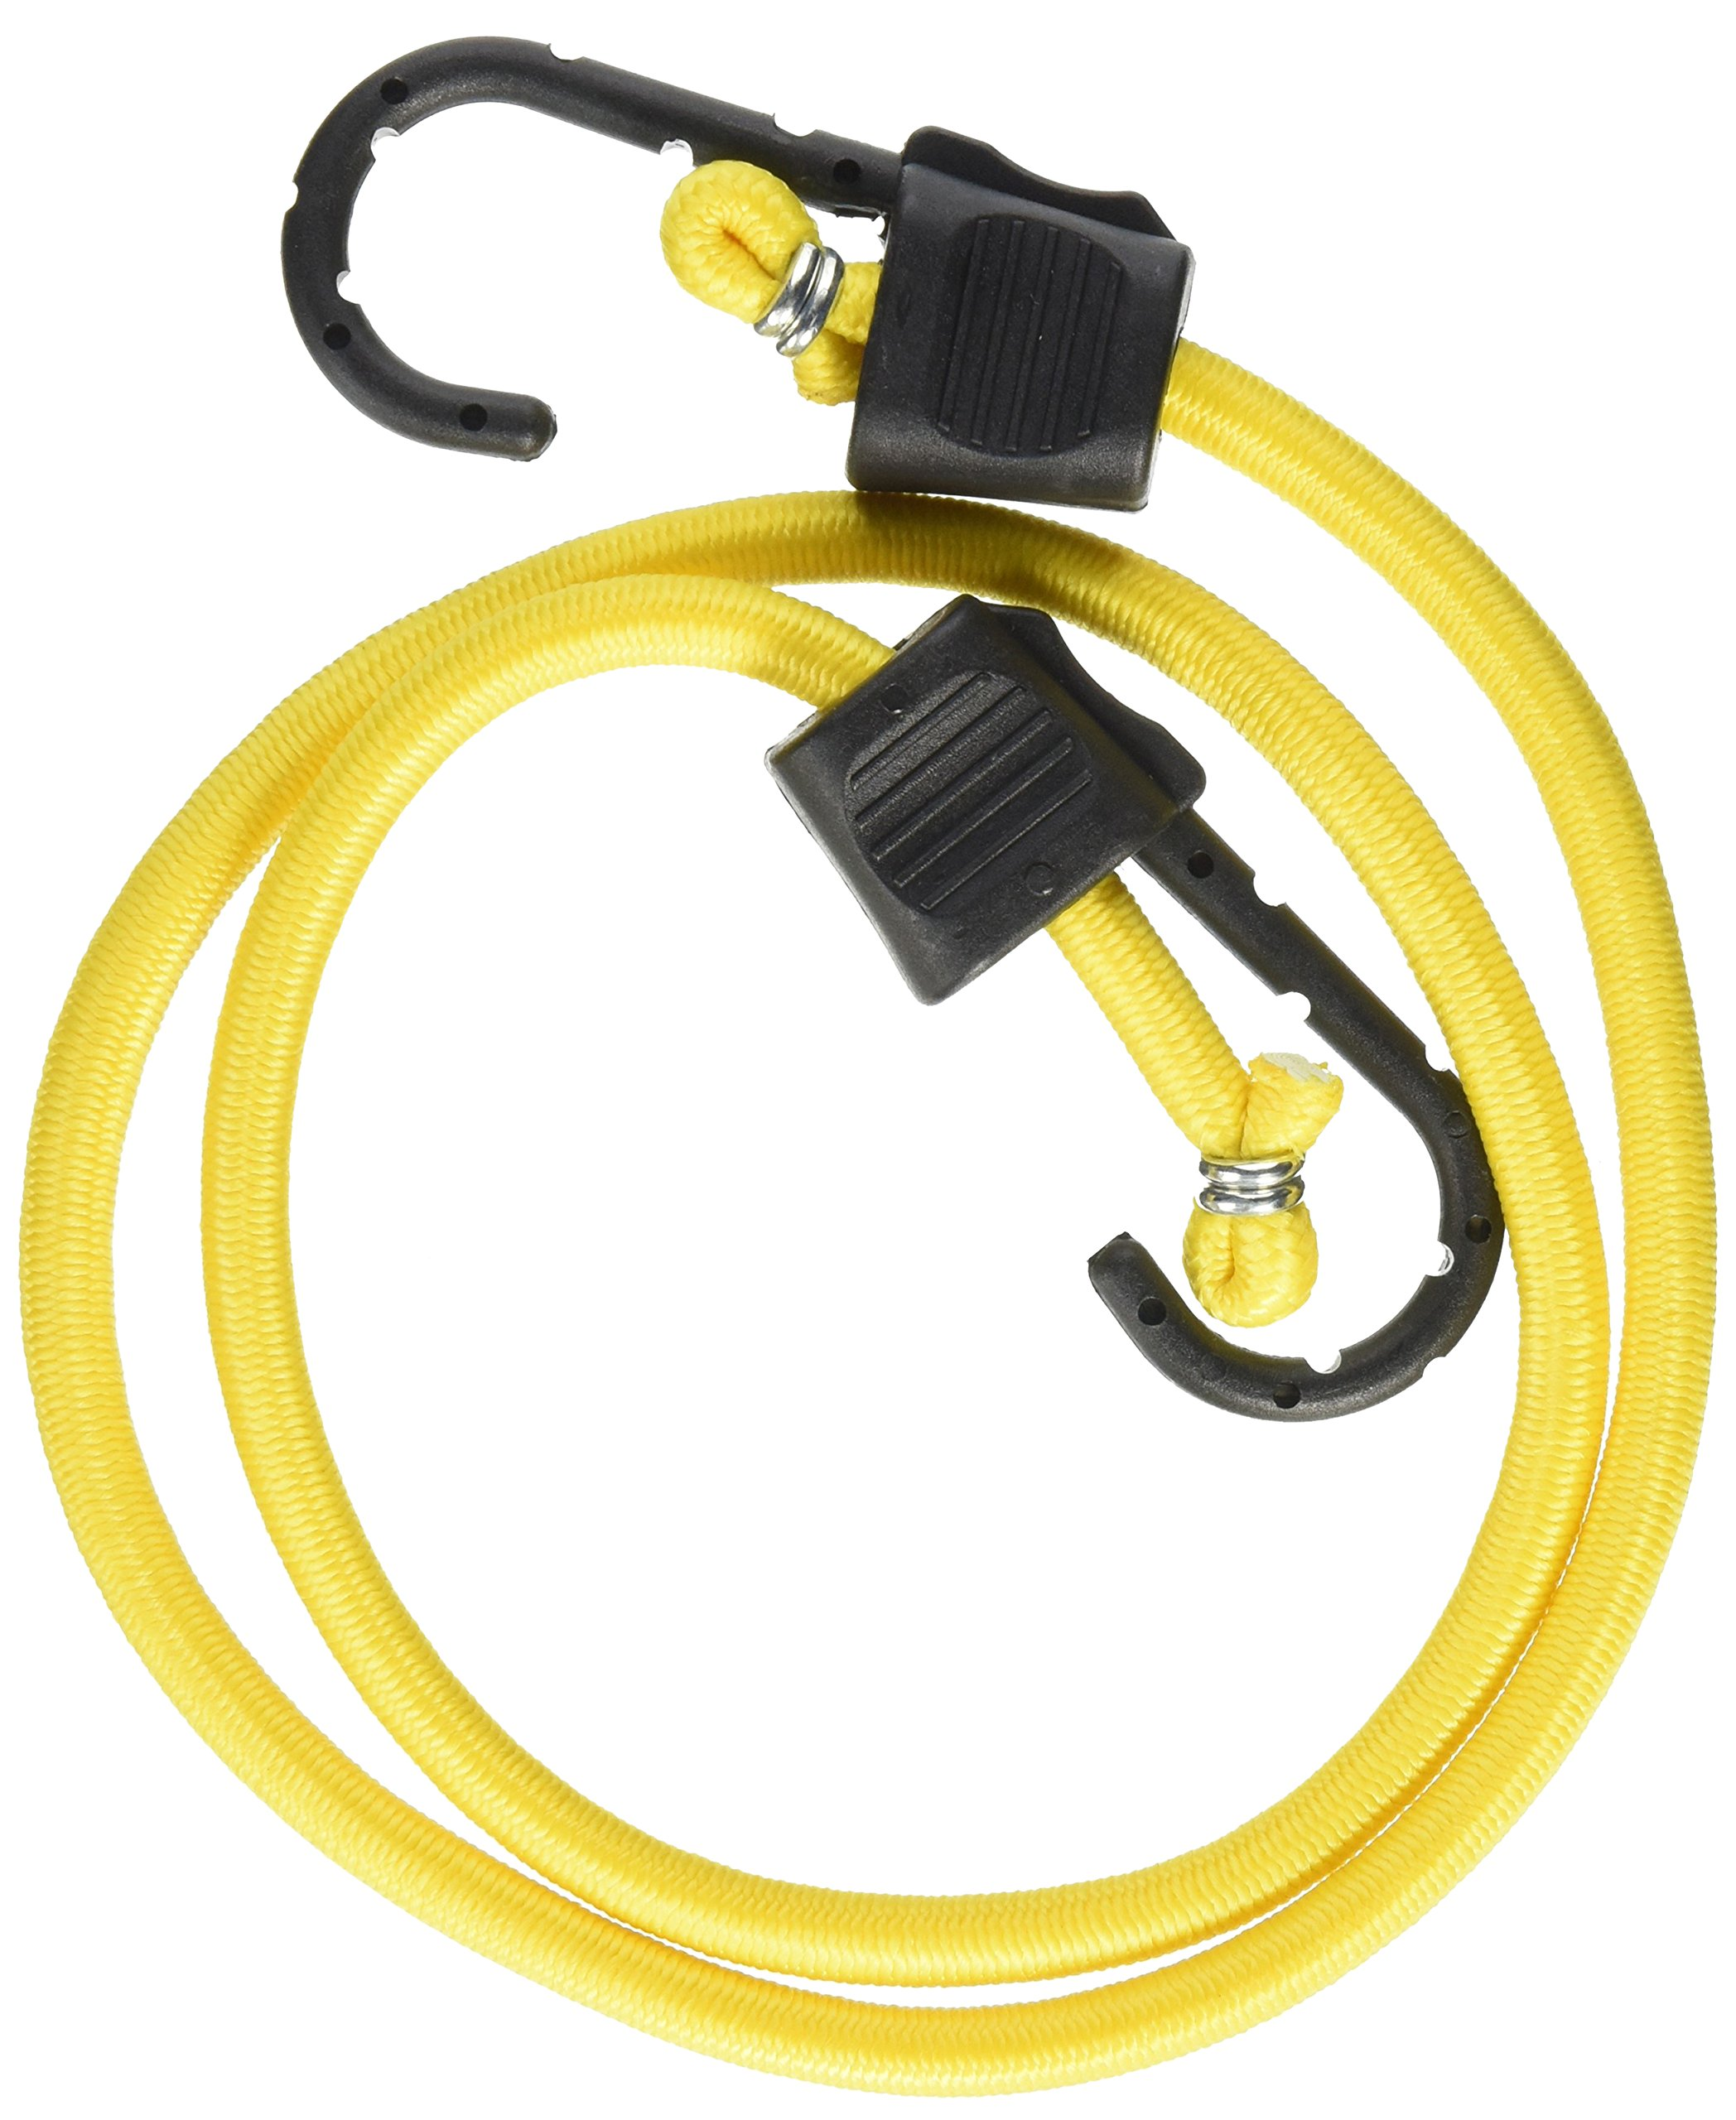 RoadPro RPJS-HD40 40'' Heavy Duty Stretch Cords with Anti-Scratch Hooks, (Pack of 2)